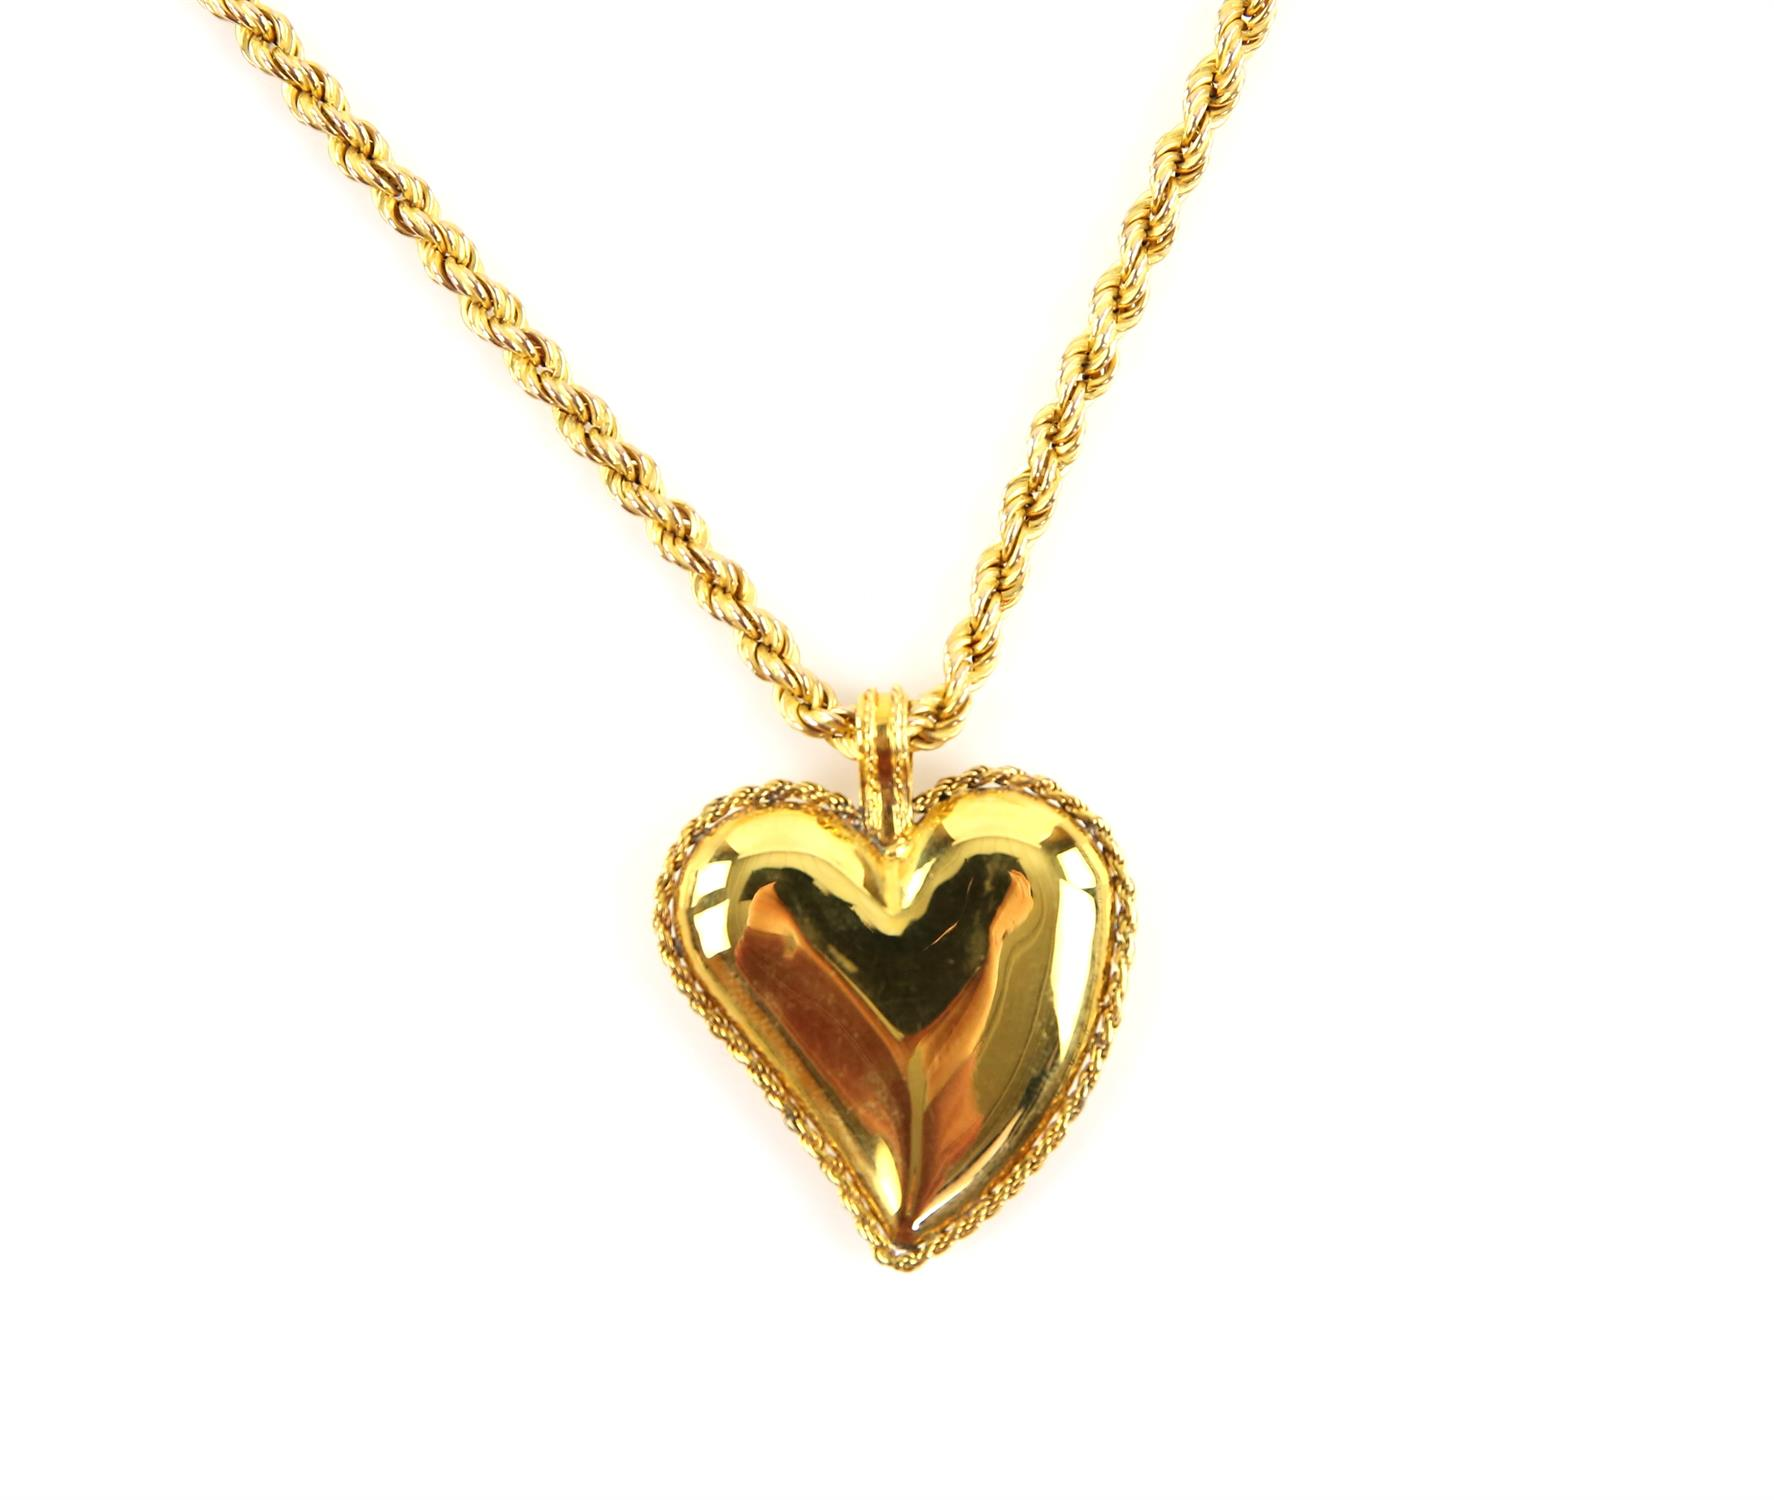 Gold heart pendant, designed as a puffed witches heart, in 14 ct, on a rope chain, hallmarked 9 ct,